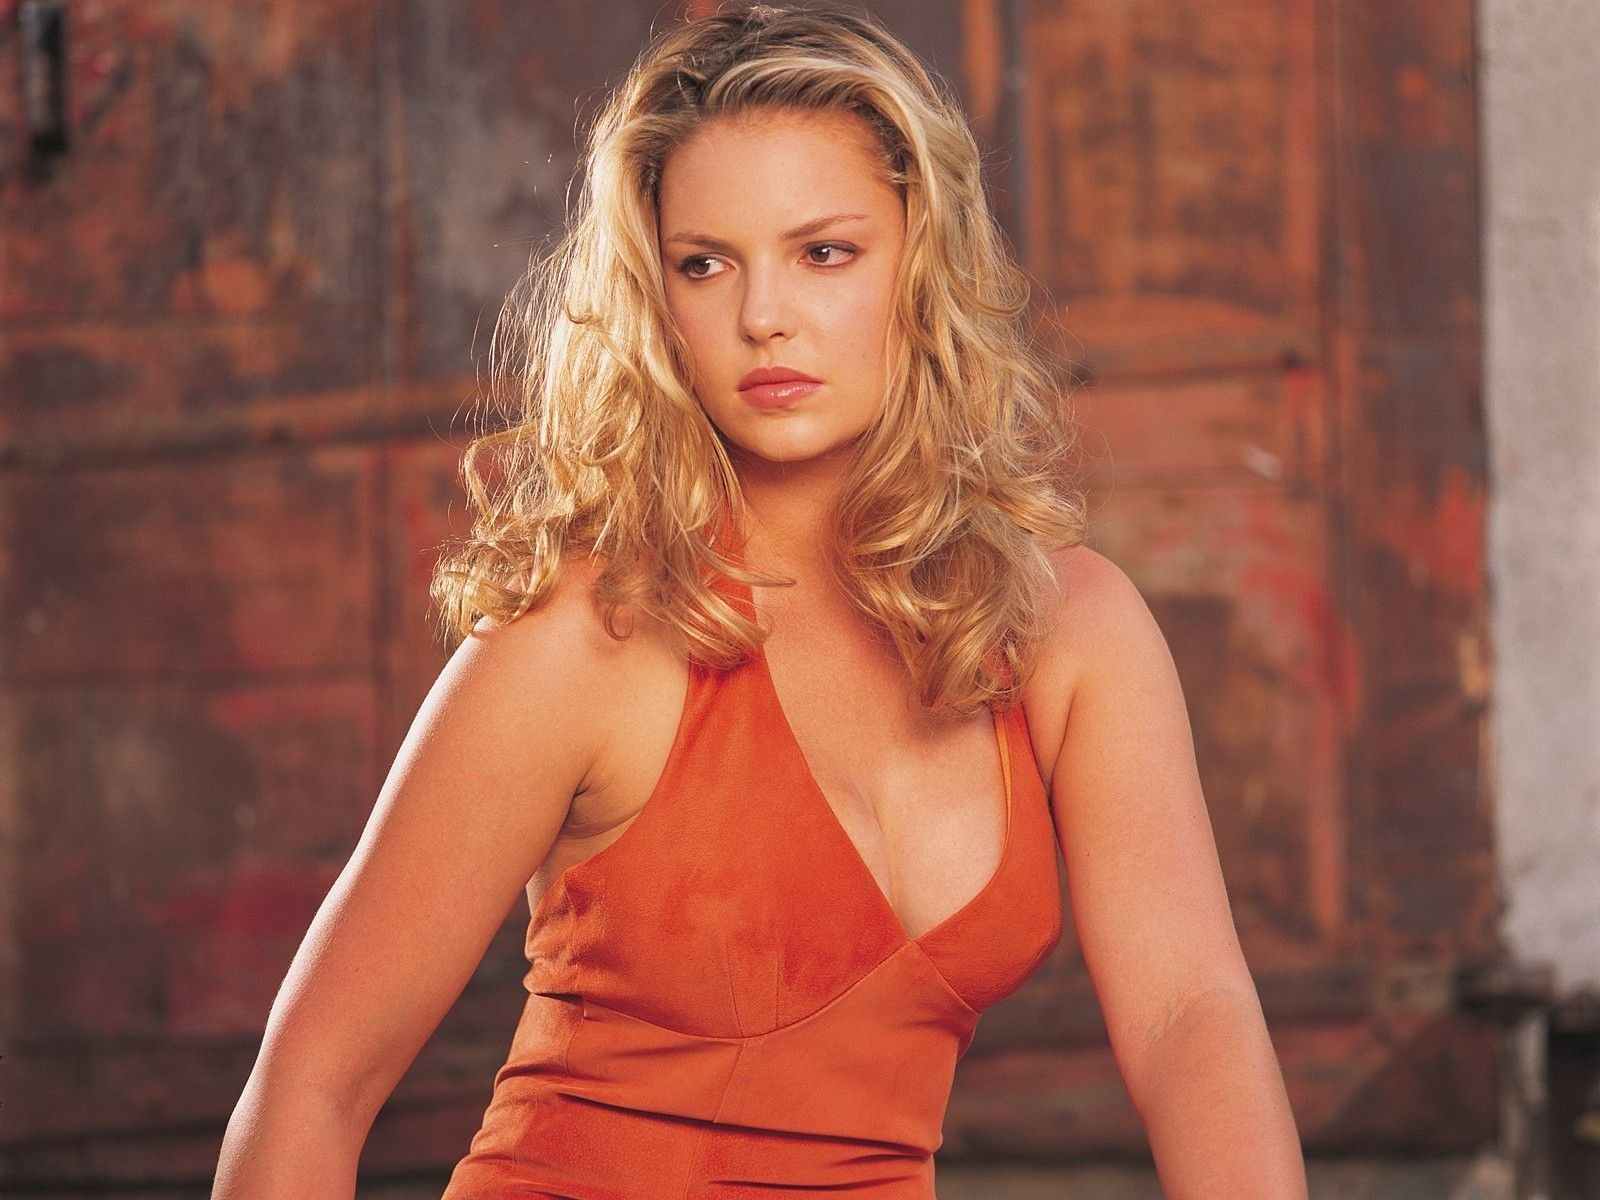 Wallpaper di Katherine Heigl in abito arancio